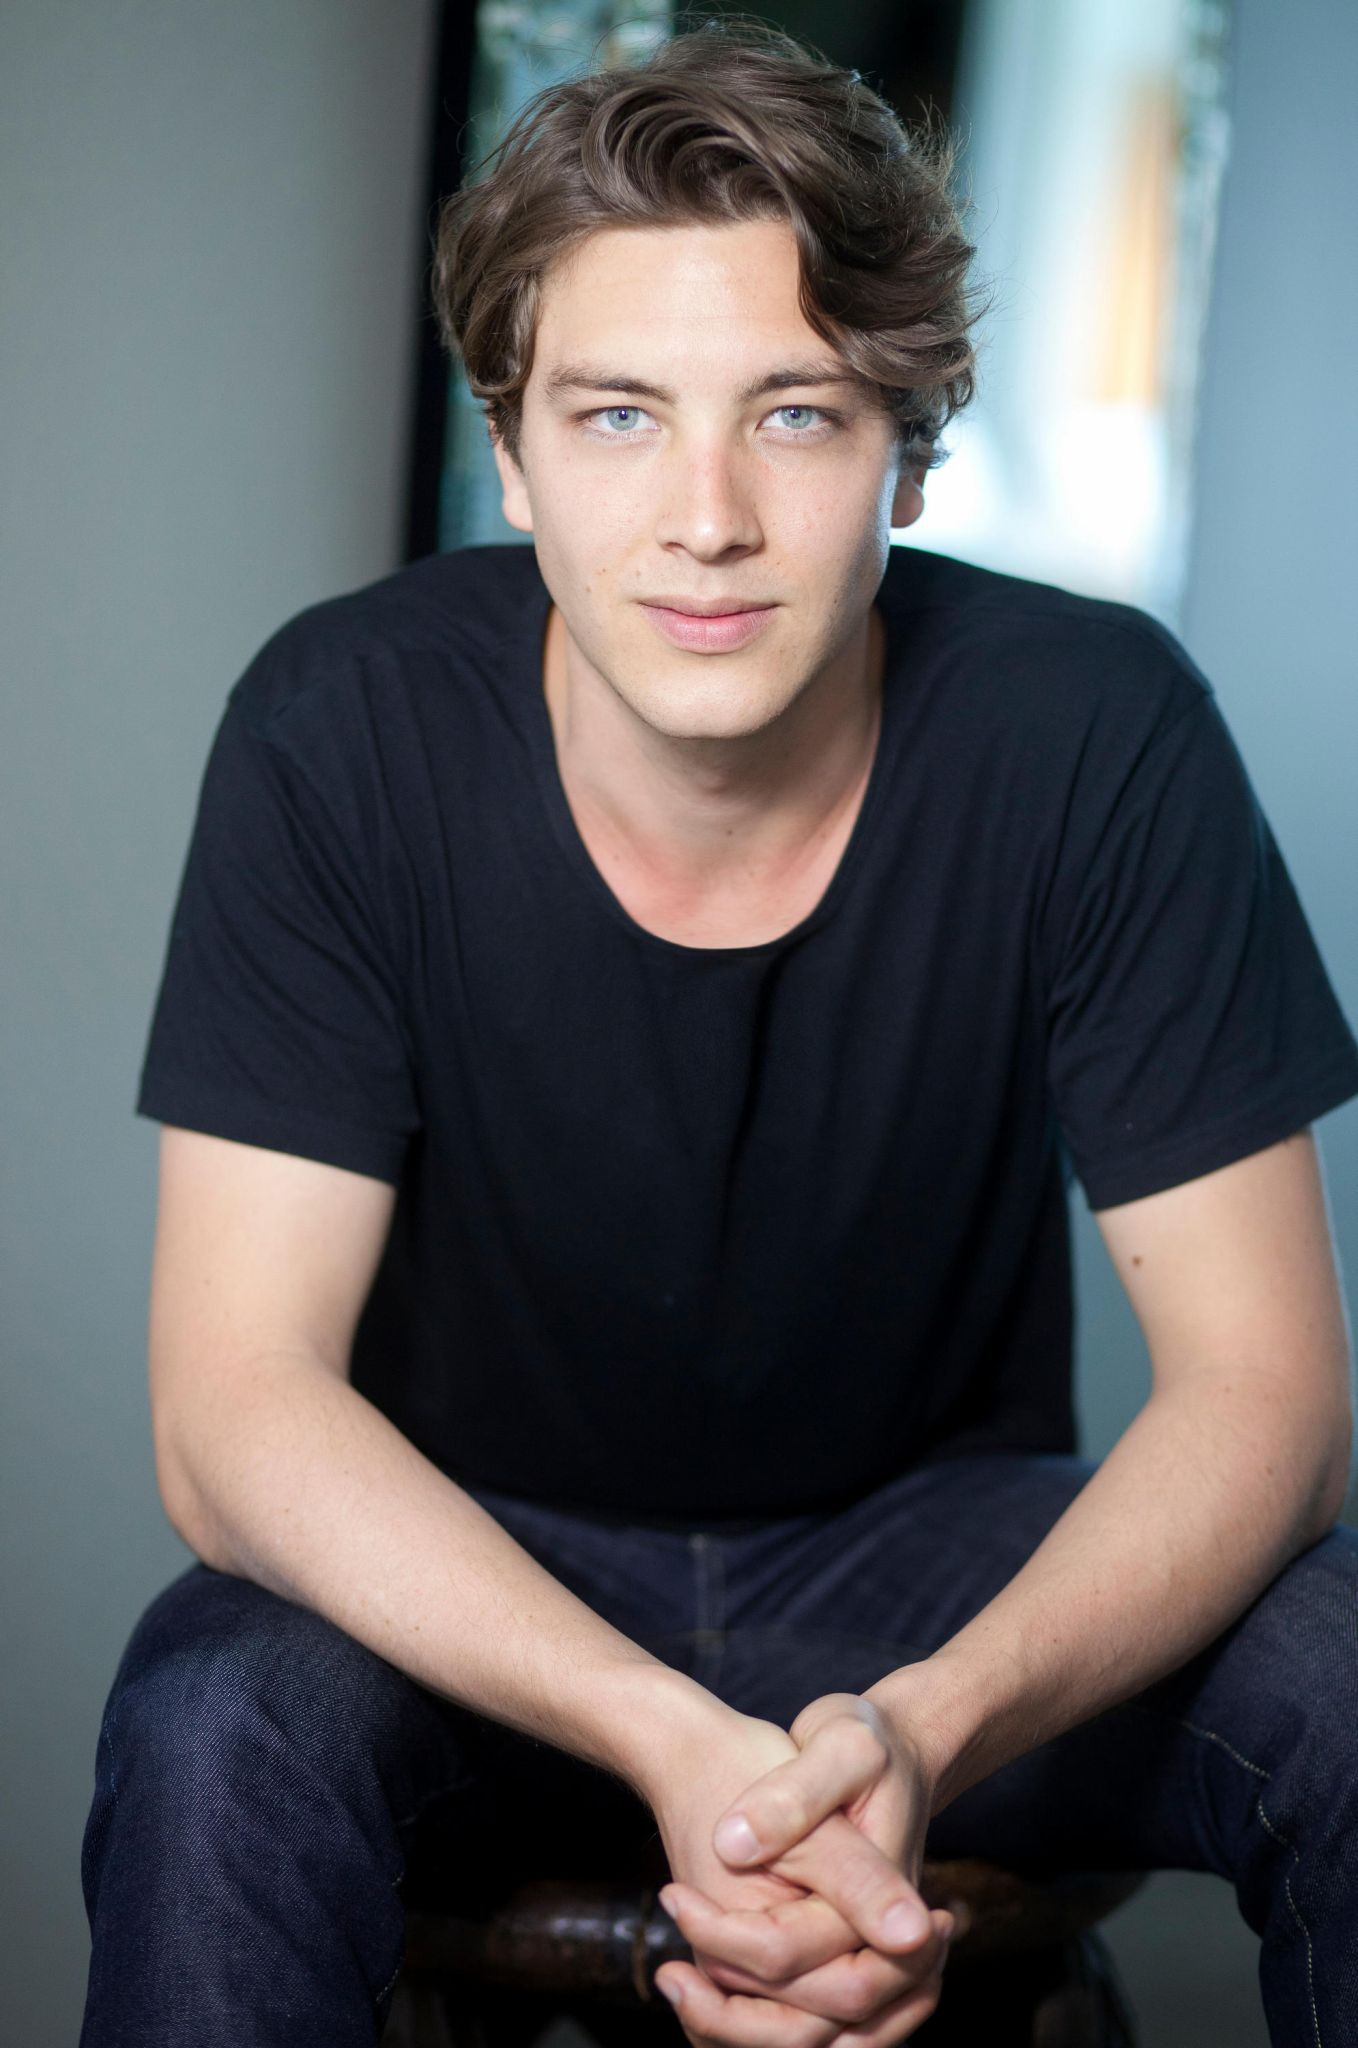 Southern Cross actor Cody Fern inspired by Heath Ledger